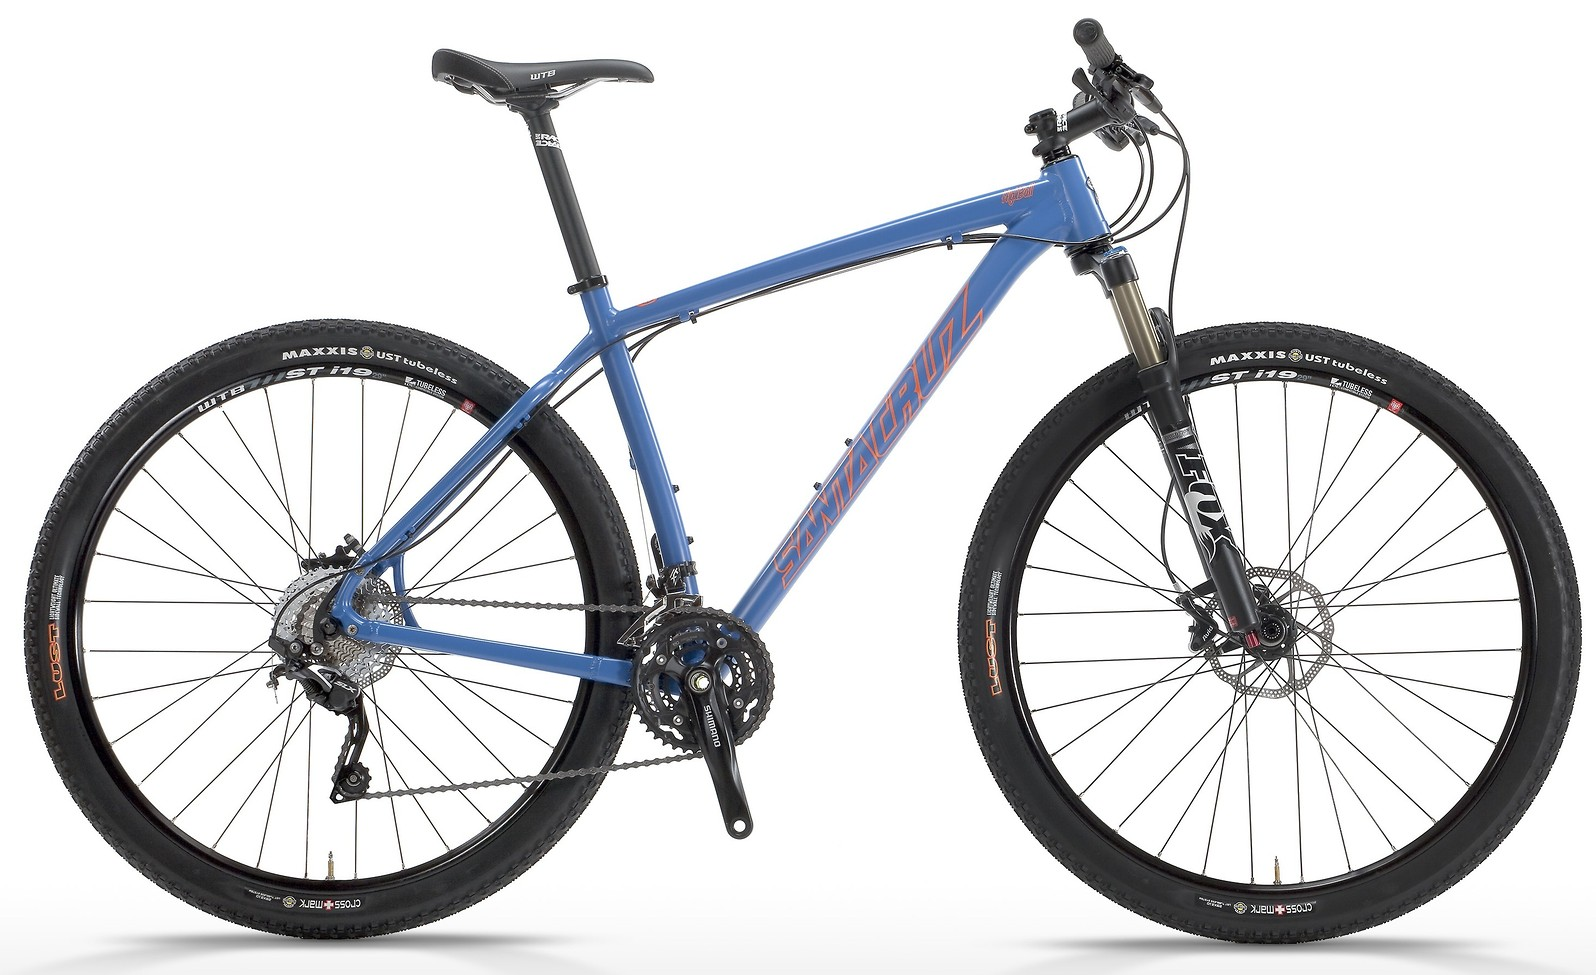 2014 Santa Cruz Highball X0-1 XC 29 Bike 2013 HIGHBALLcatalogflat